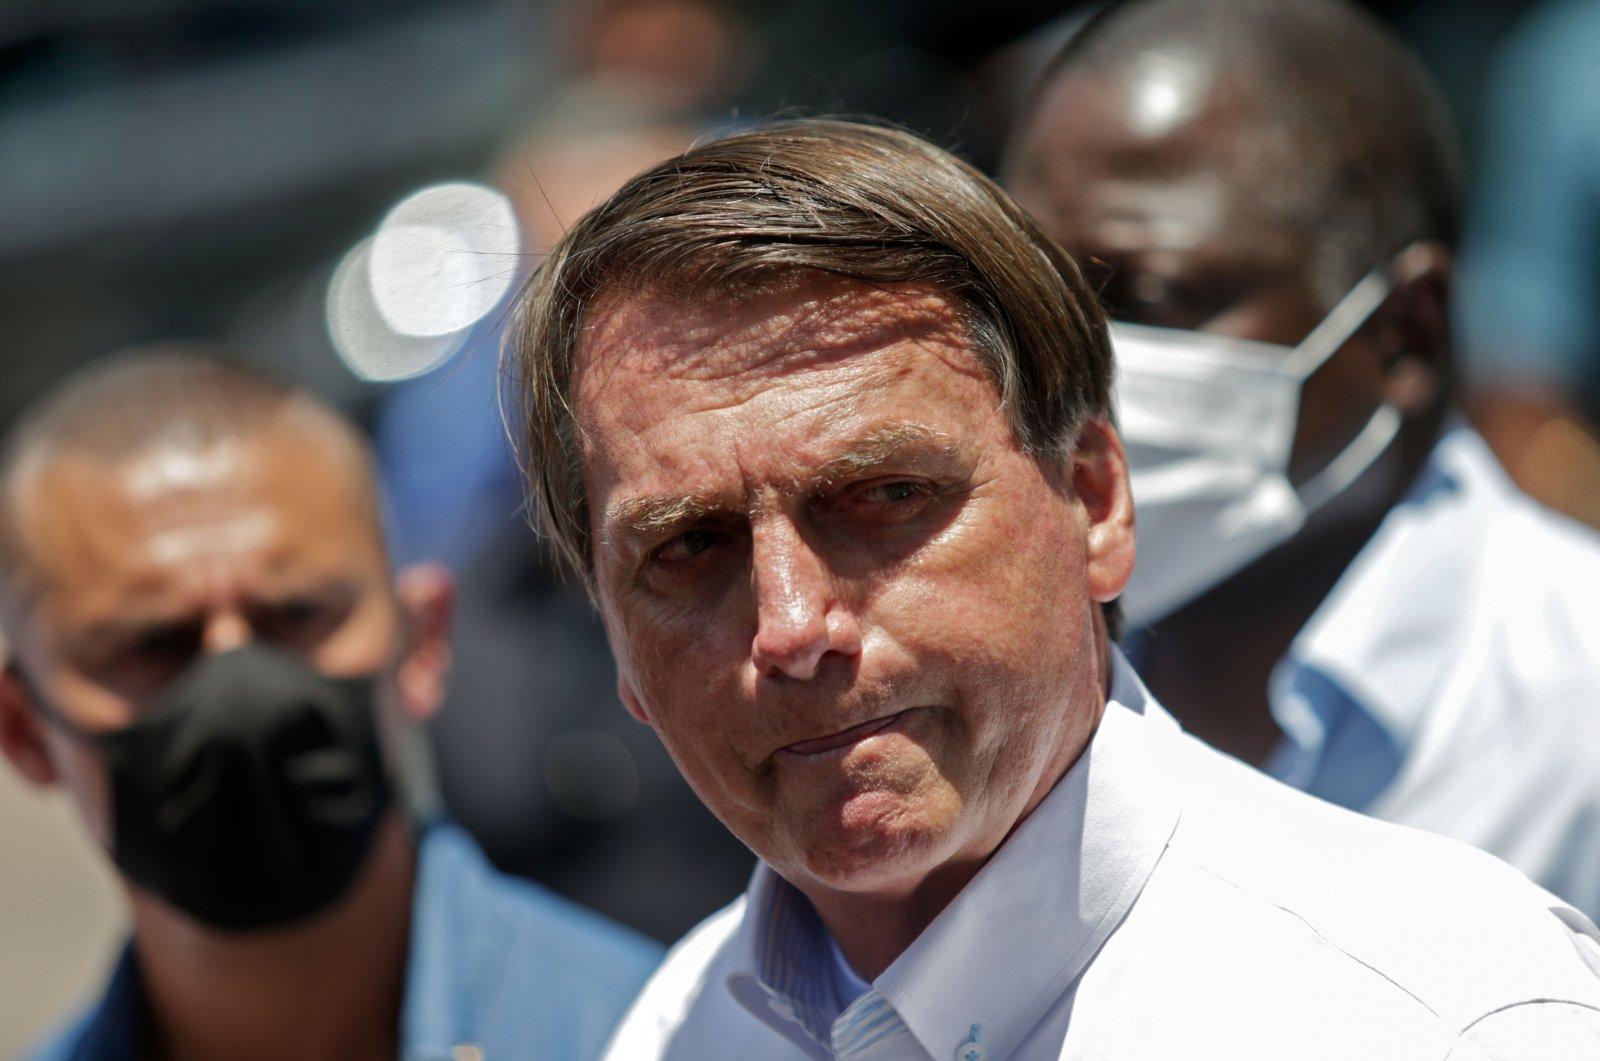 Brazilian President Jair Bolsonaro gestures as he speaks to the press after voting during the second round of municipal elections at the Rosa da Fonseca Municipal School, in the Military Village, Rio de Janeiro, Brazil, Nov. 29, 2020. (AFP Photo)